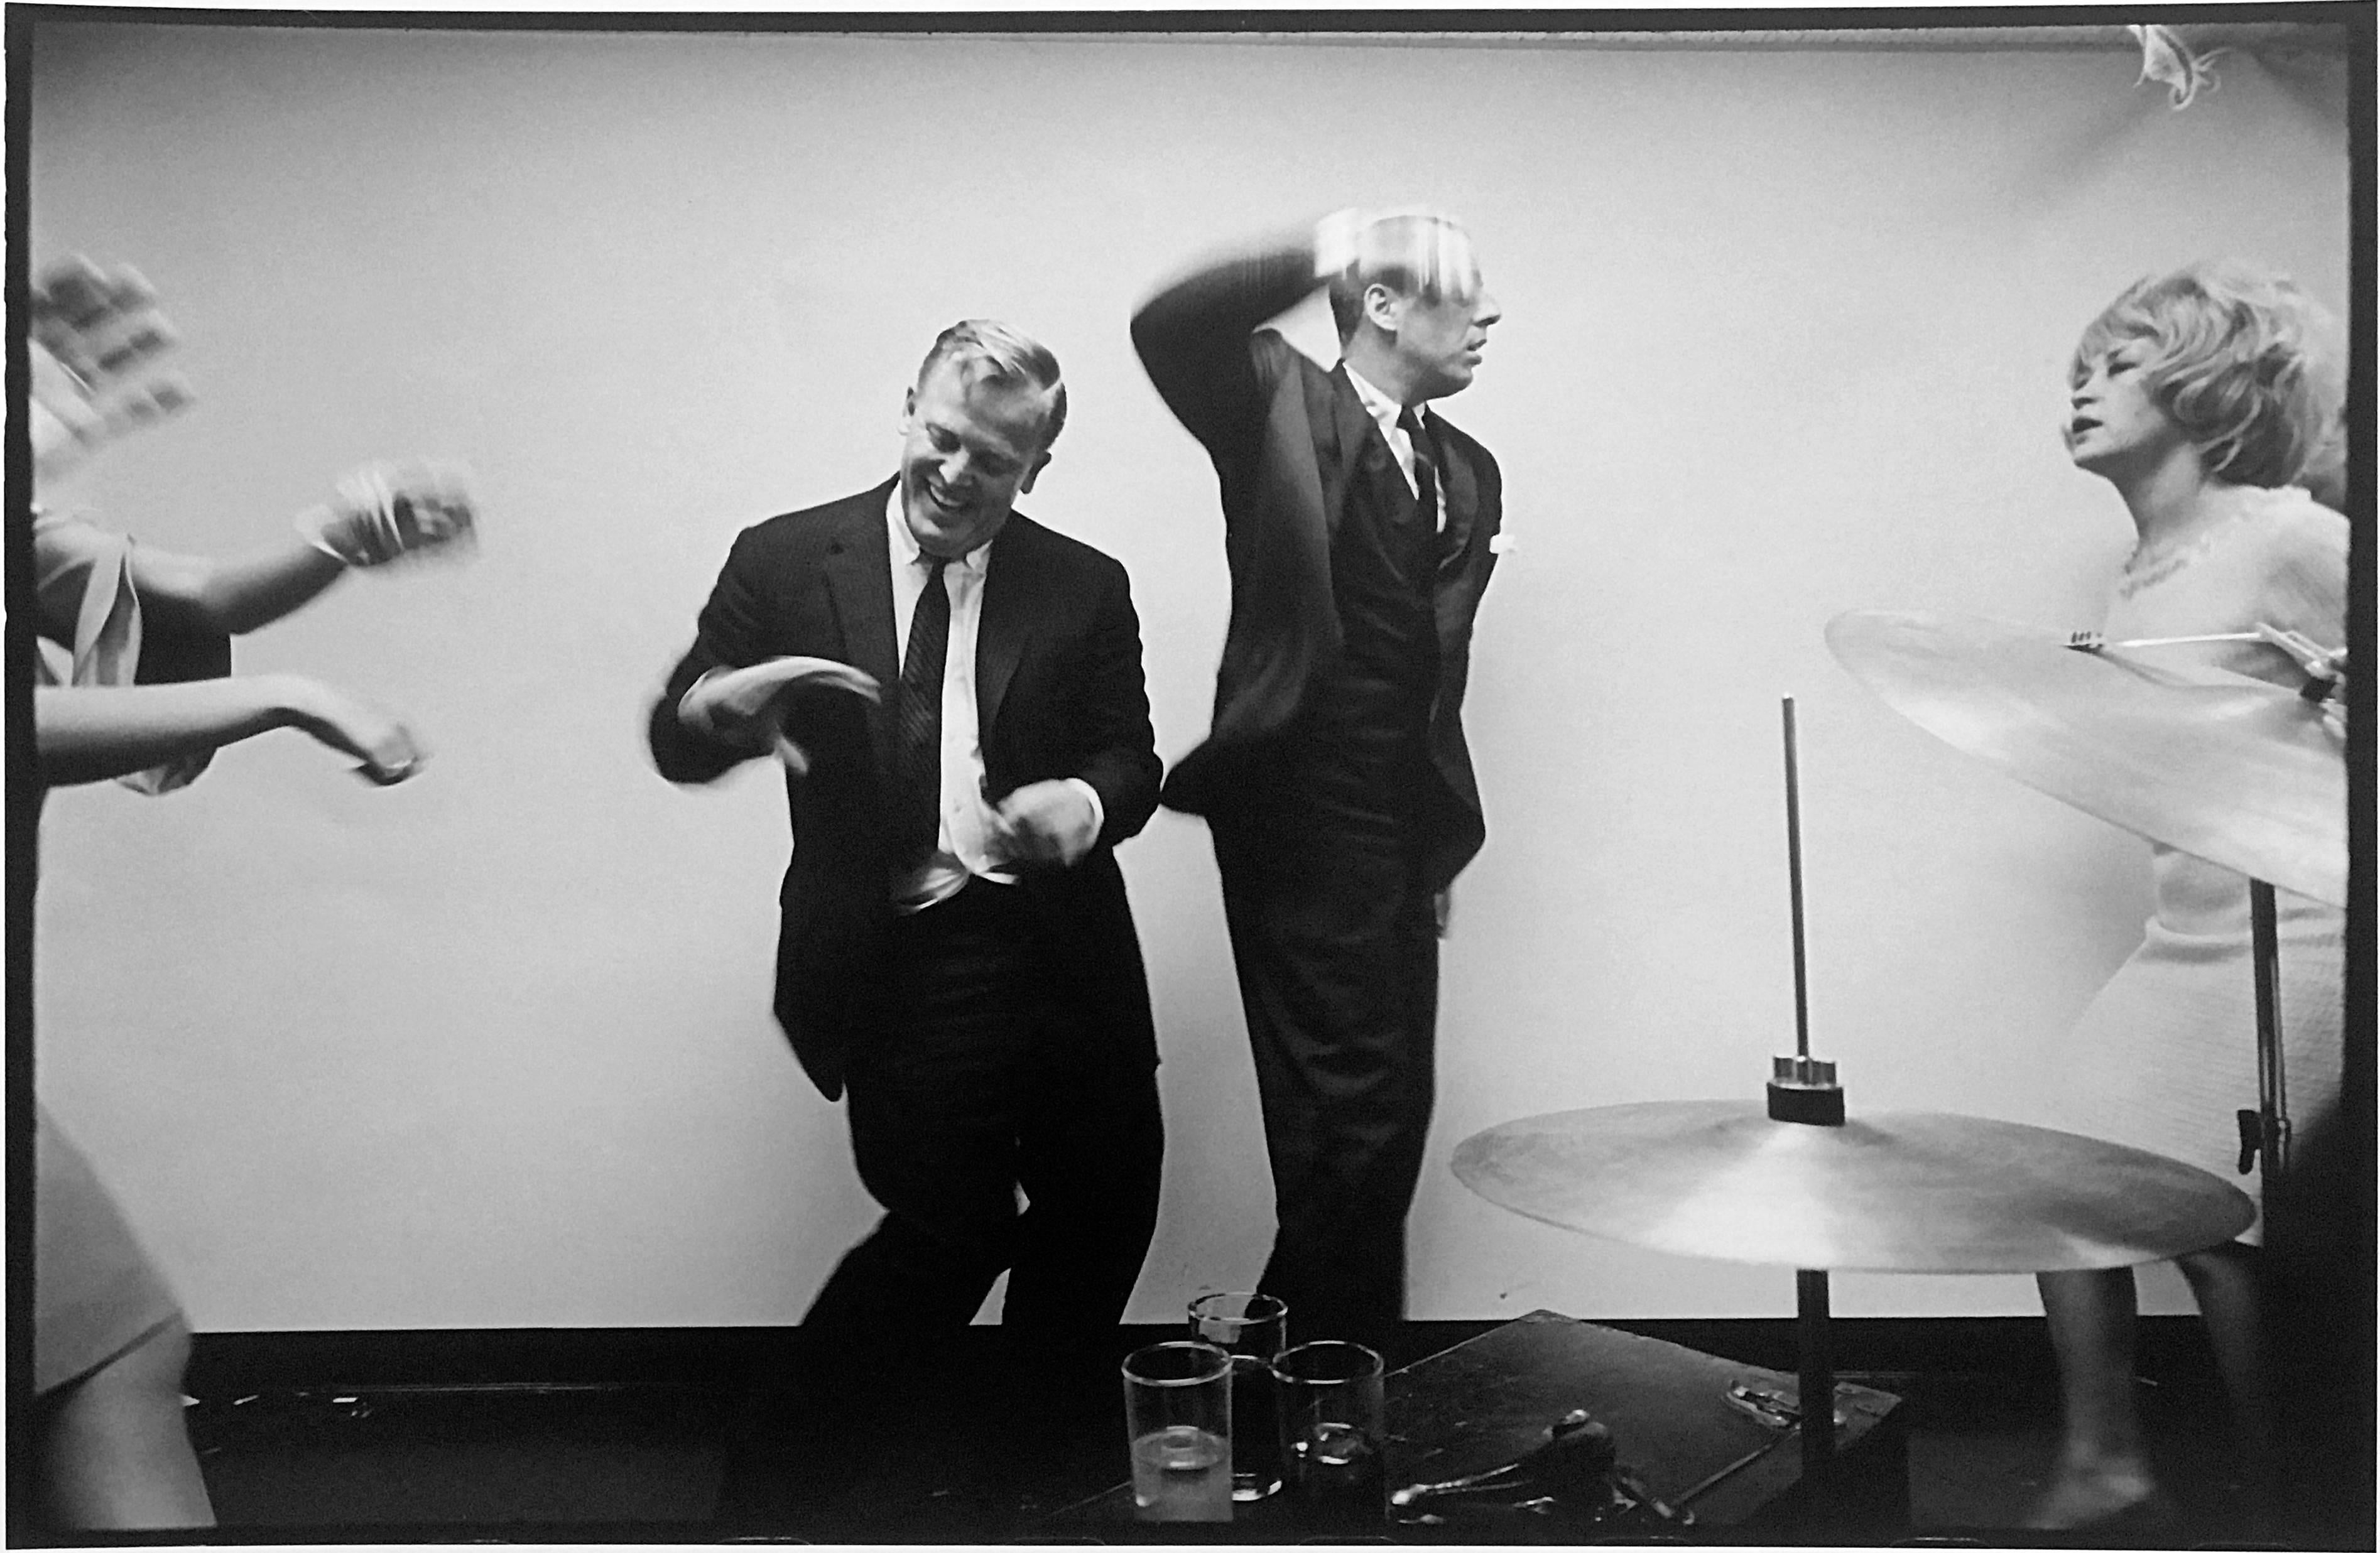 Office party, New York City, A Signed Gelatin Silver Photograph from the 1960s